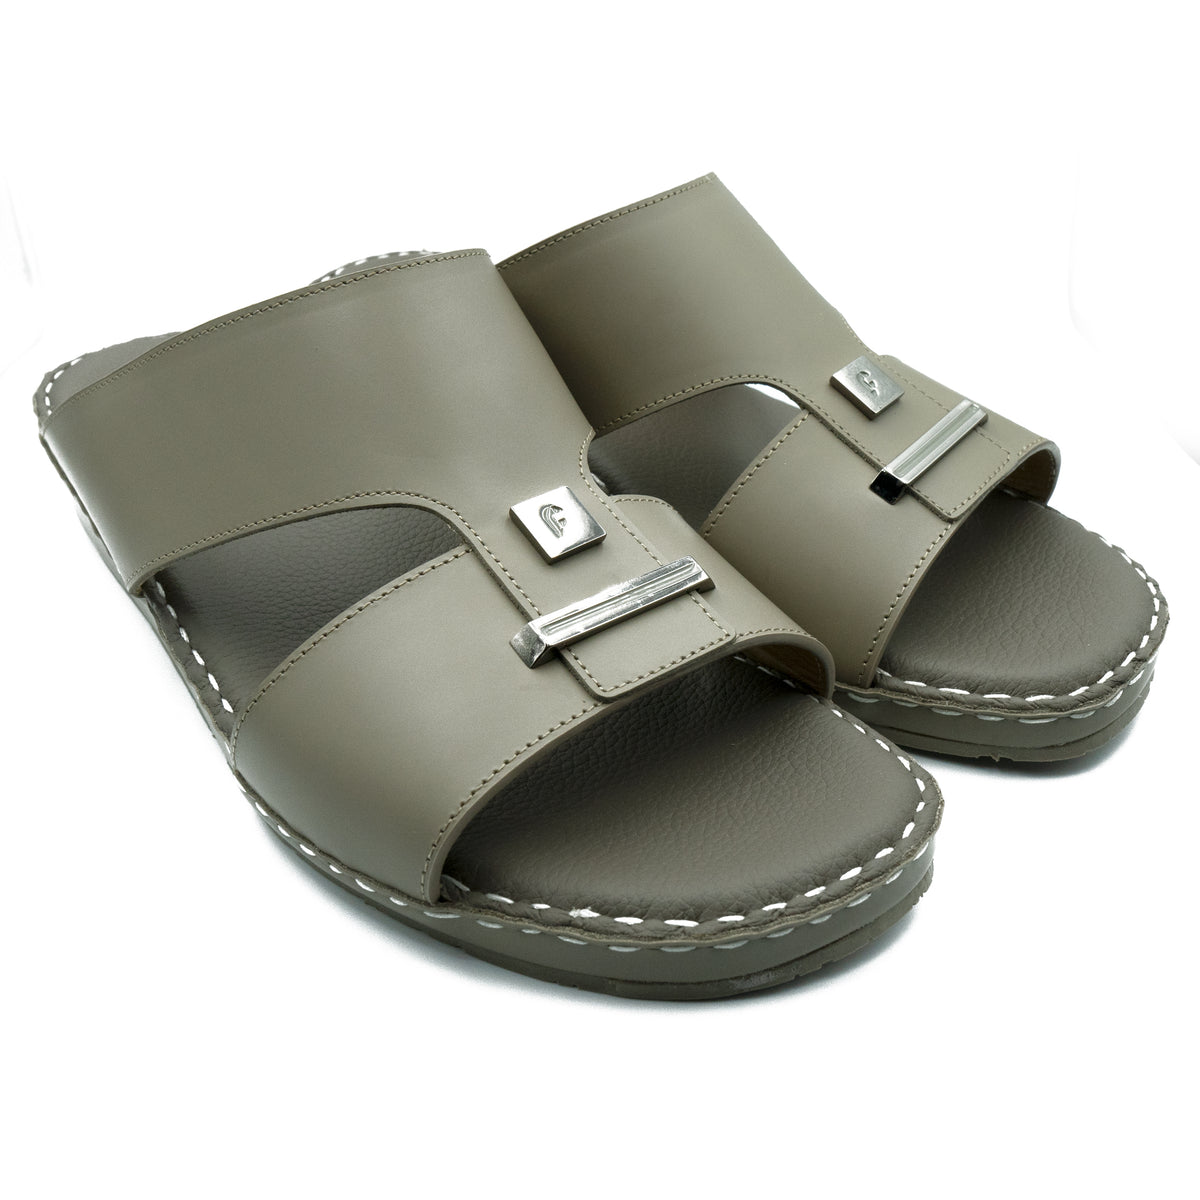 Earth, 2-Plate, Oxford, Soft, Matte, Arabic, Flat, Sandals, Ramadan Collection, Arabic, Sandals, Accessories